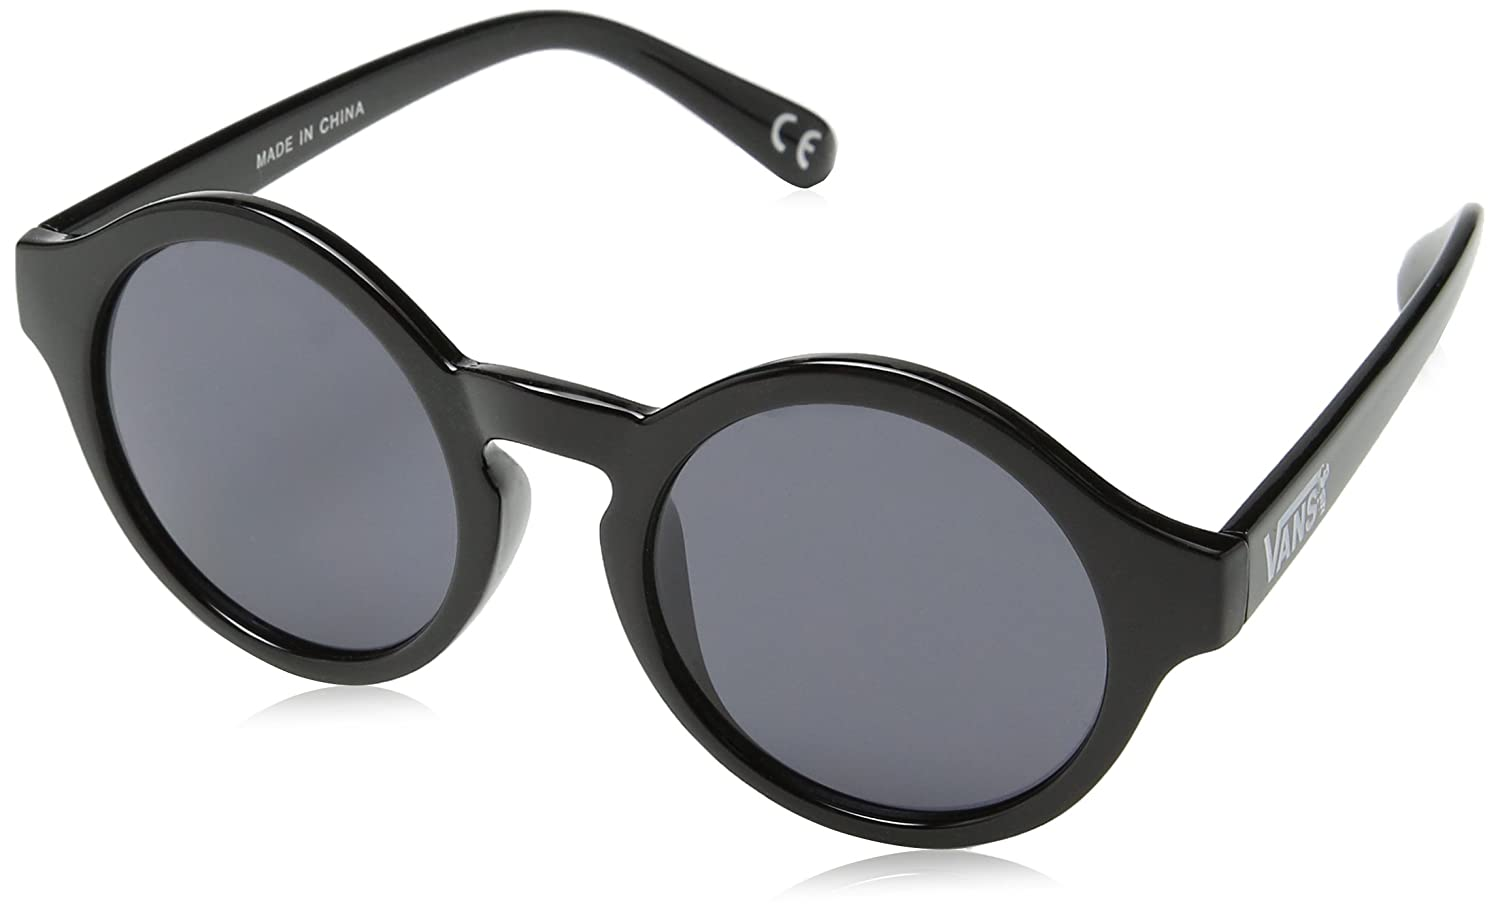 60fe7f1d8d2f Vans_Apparel Unisex's Vans X Peanuts Shades Sunglasses, Black, 55:  Amazon.co.uk: Clothing